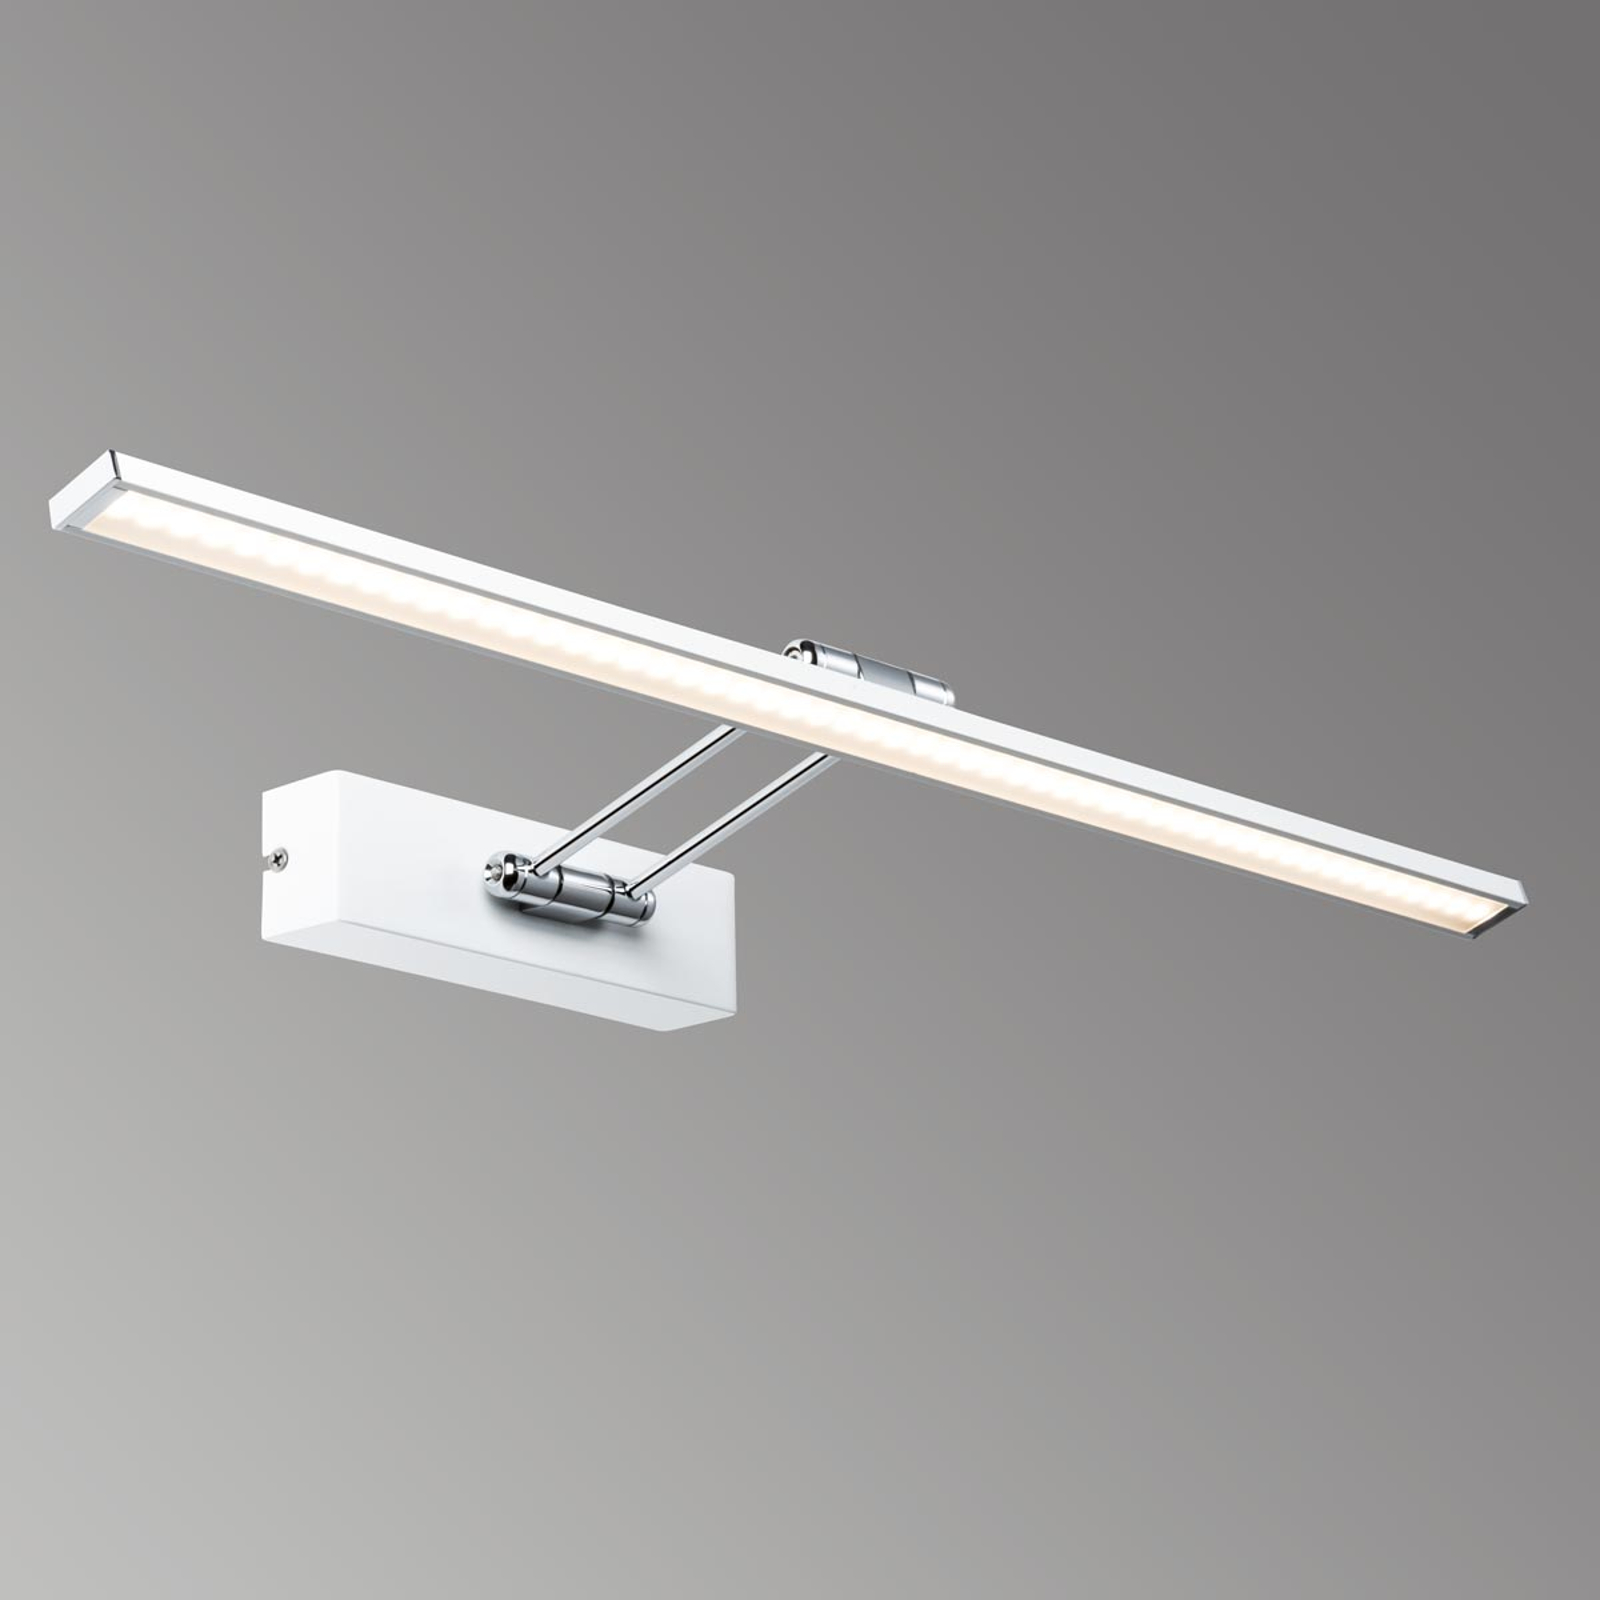 Galeria LED picture light Beam Sixty, white_7600778_1